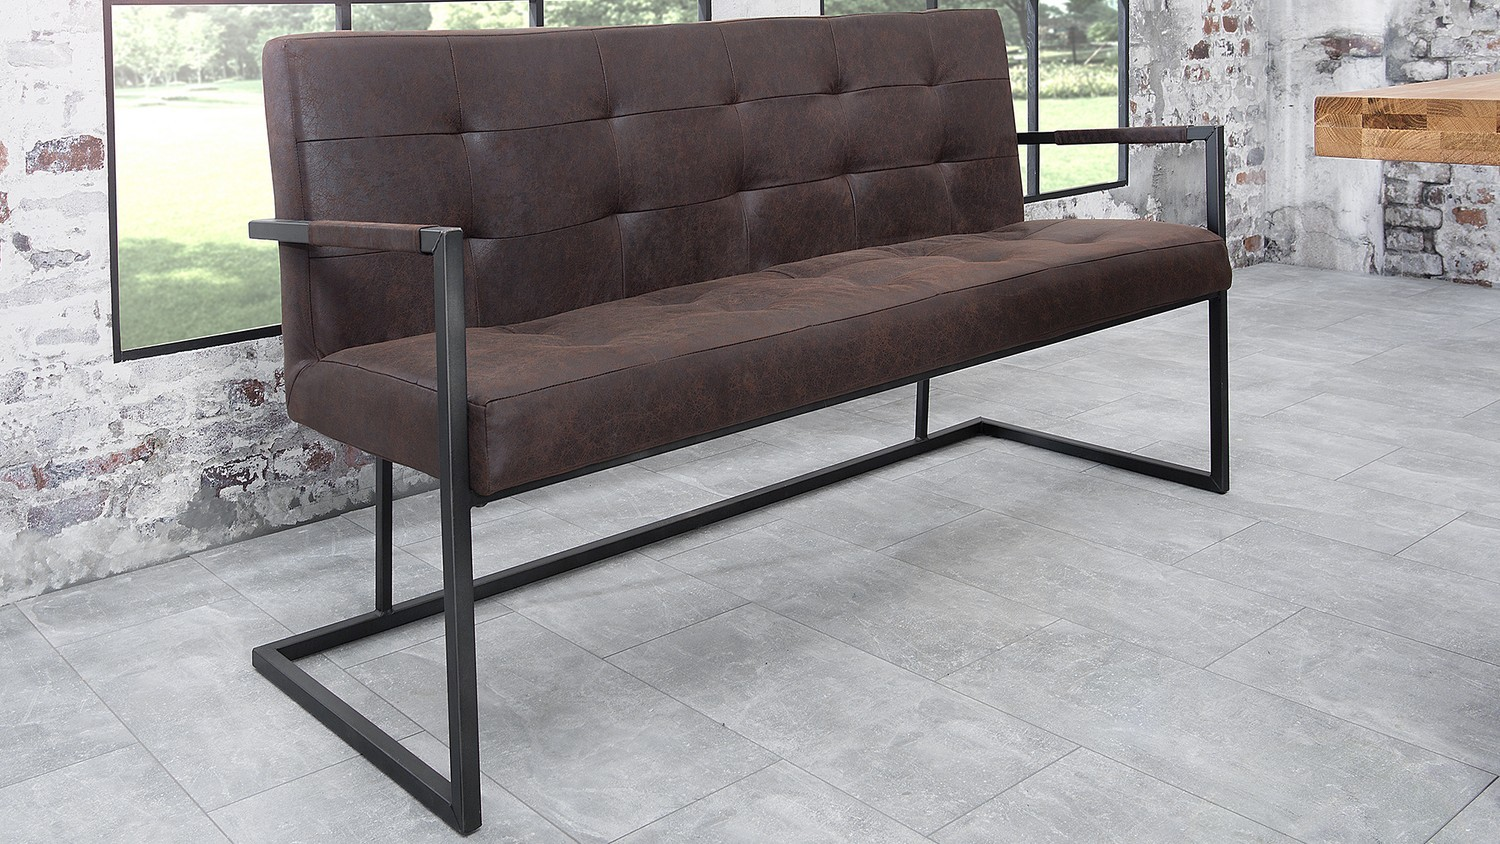 Banc Industriel Simili Cuir Marron Aspect Vieilli Herbod Gdegdesign